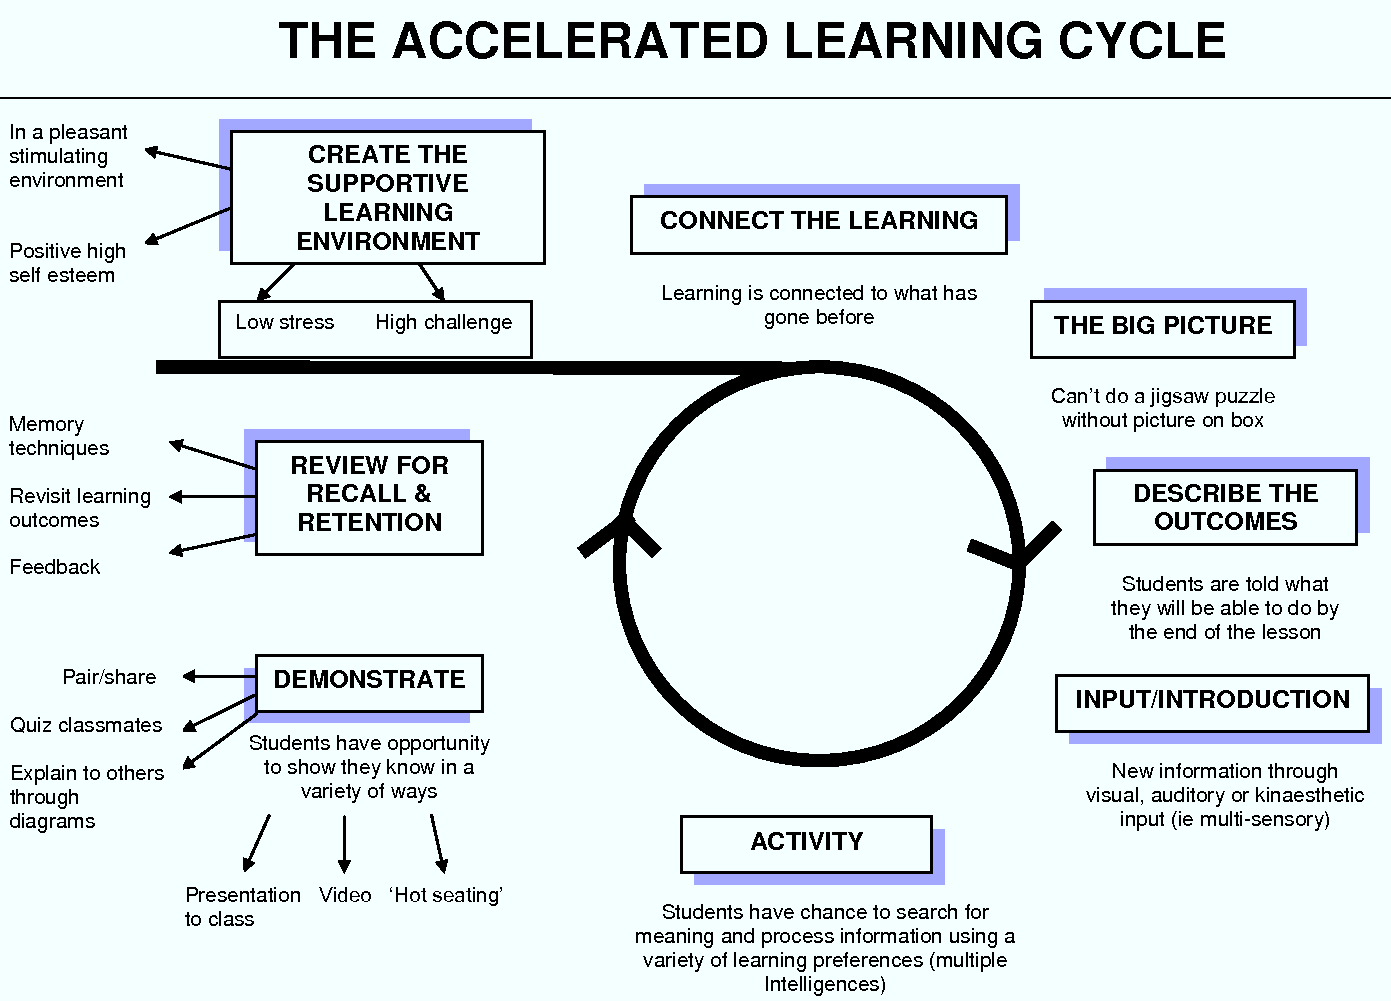 The Accelerated Learning Cycle